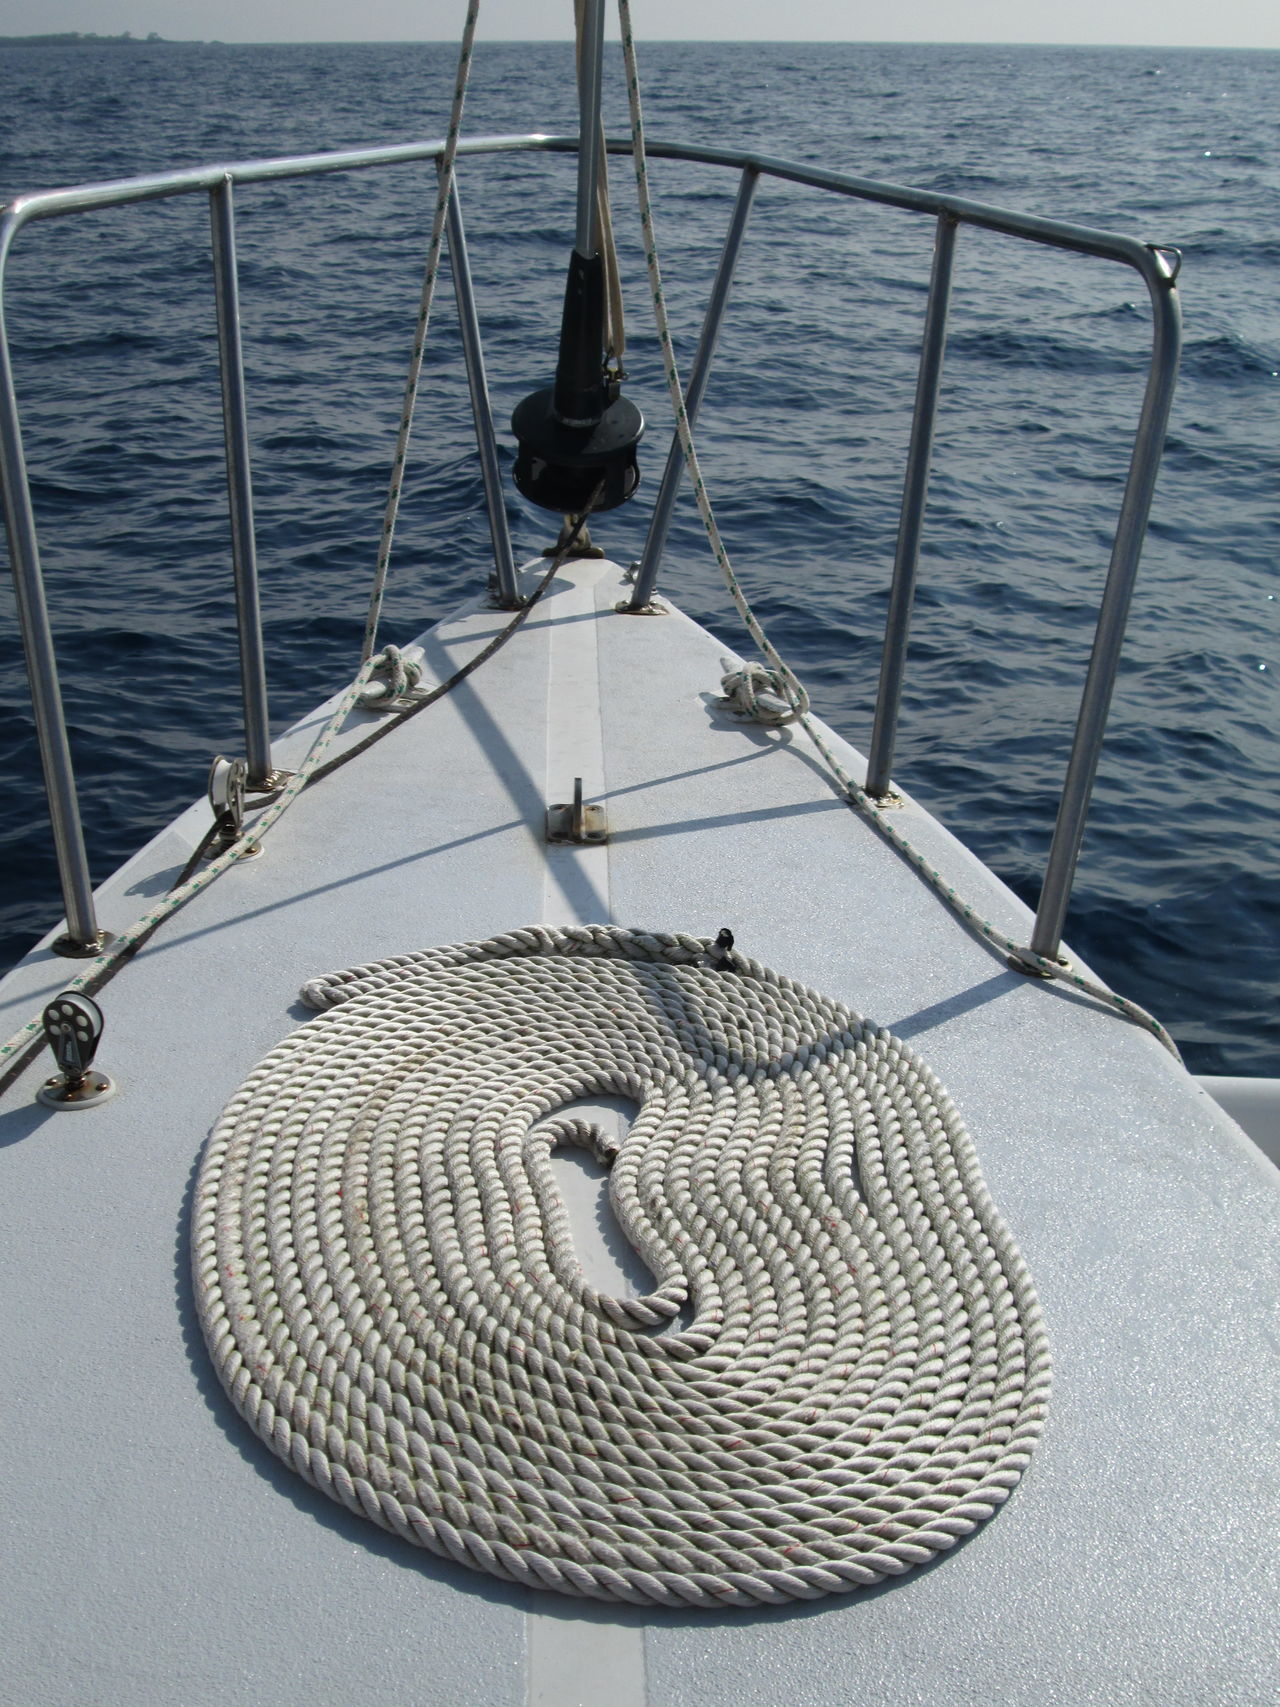 Day Nautical Vessel Outdoors People Regatta Sailboat Sailing Sea Sport Water Yachting